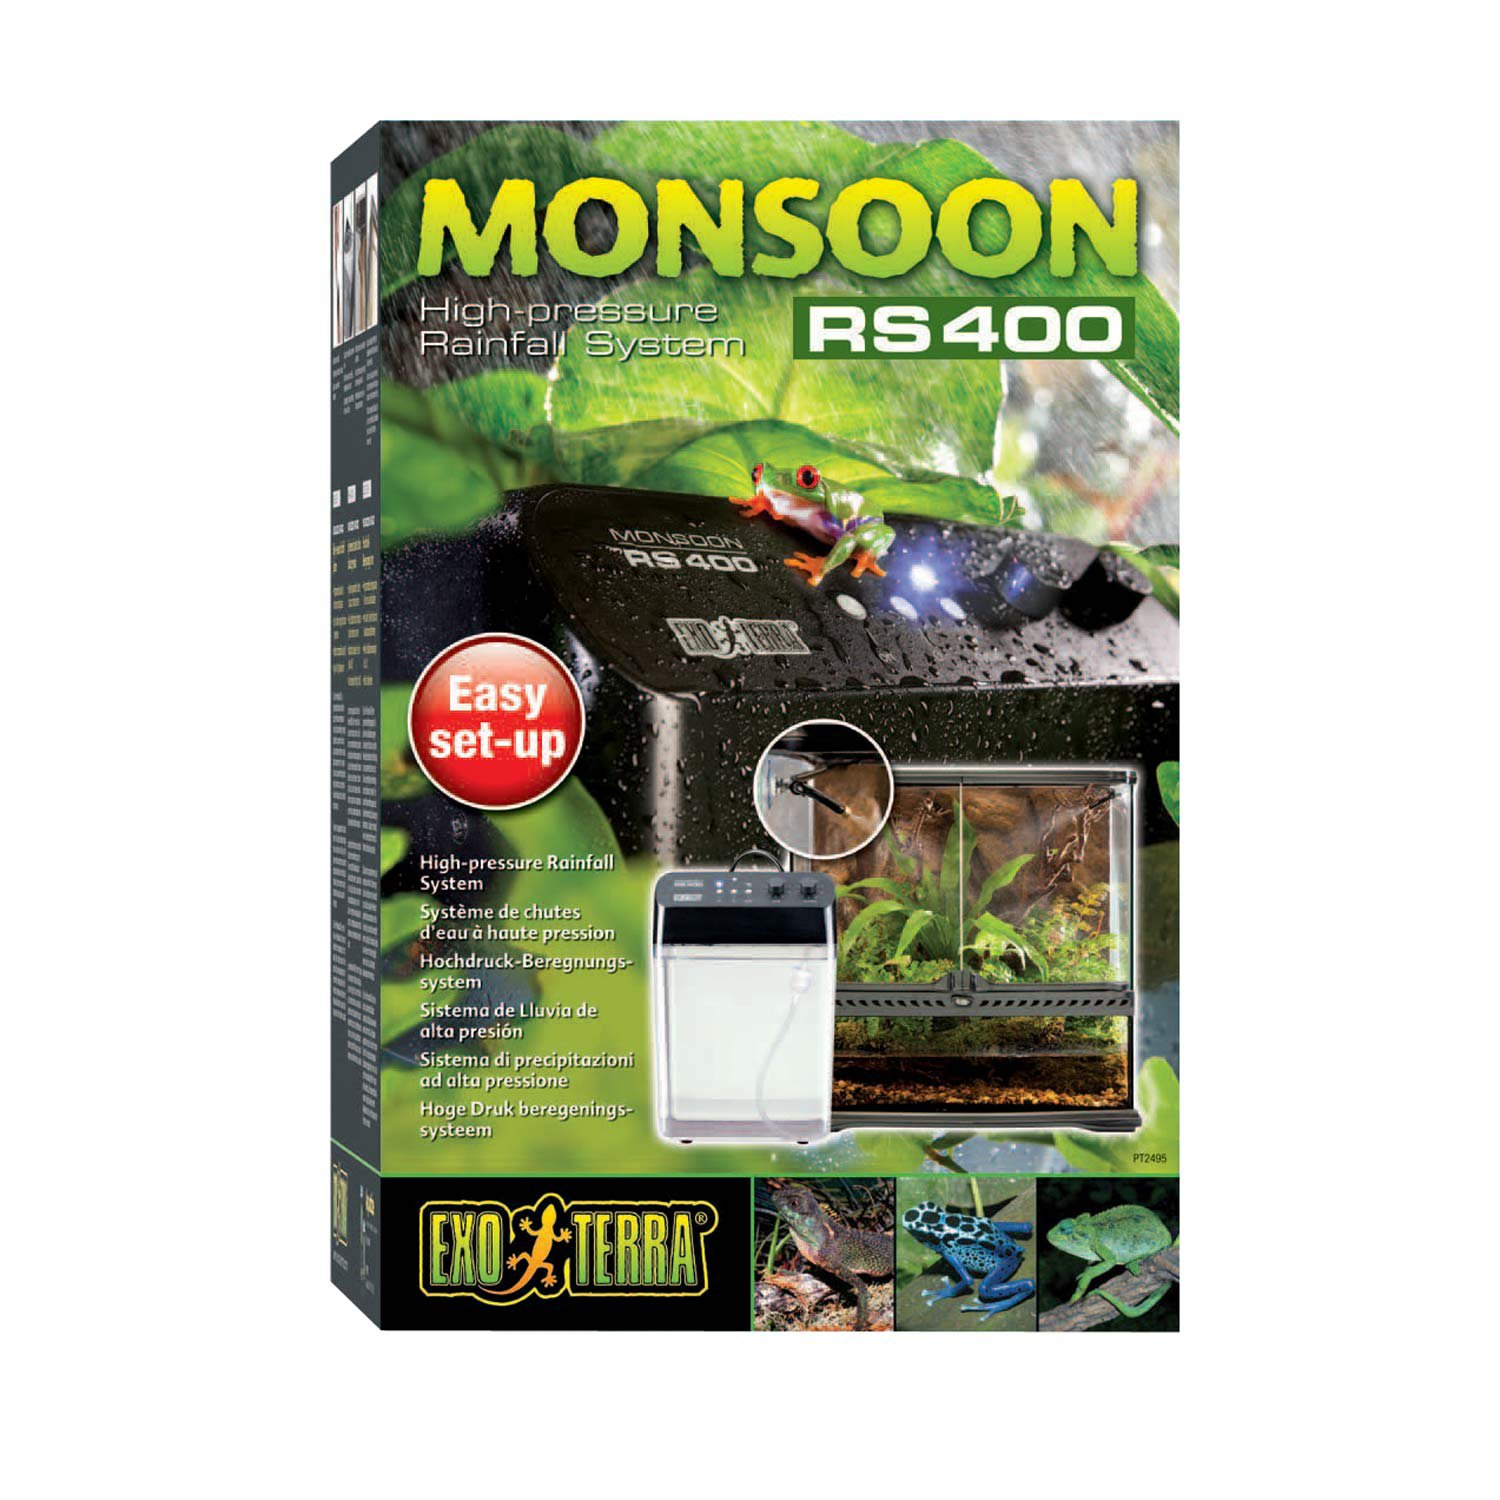 Exo-Terra Monsoon RS400 Rainfall System for Reptiles